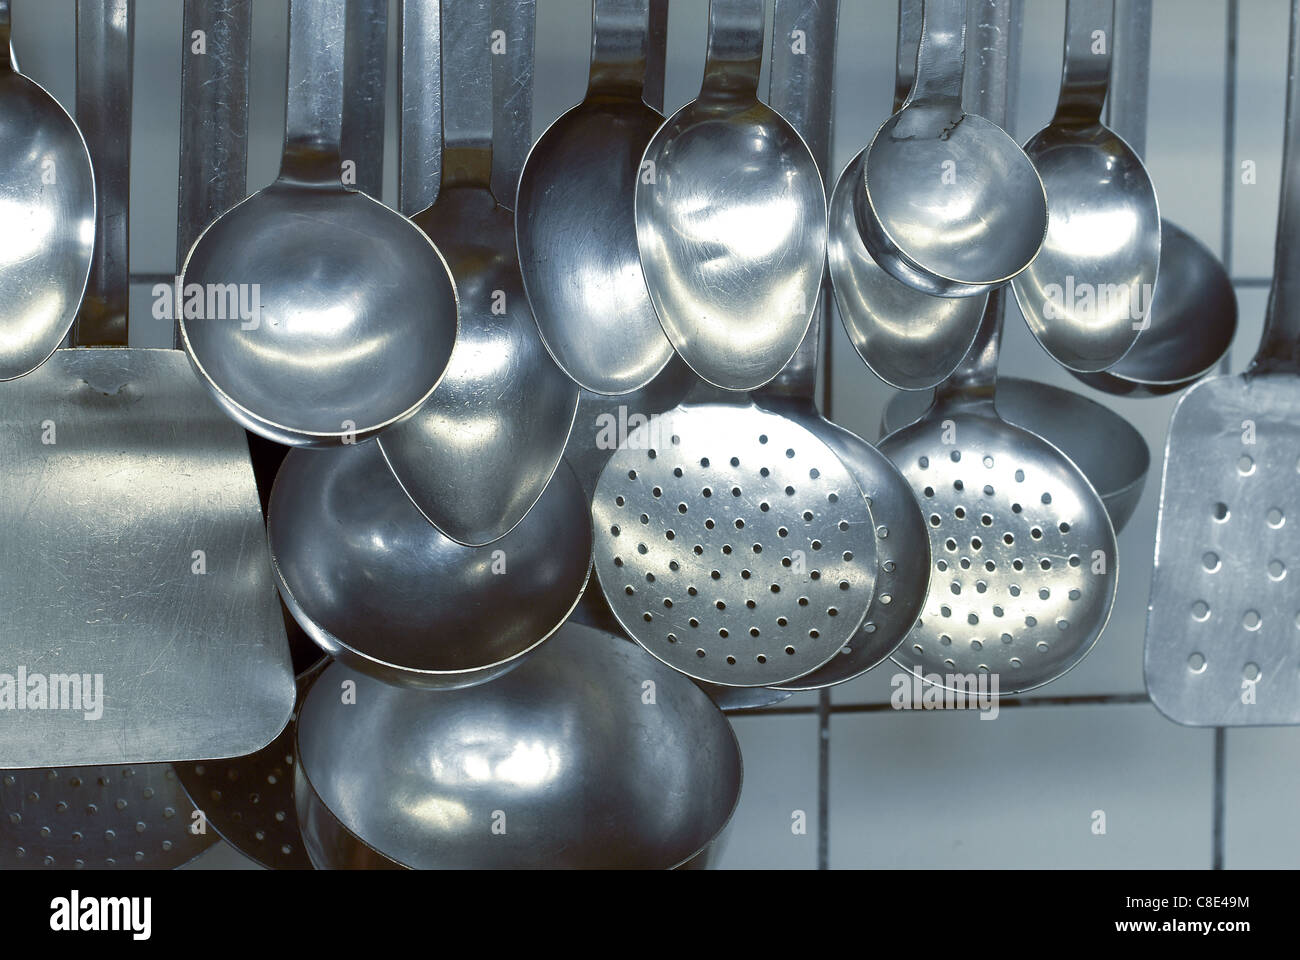 Silver Col Stock Photos & Silver Col Stock Images - Alamy